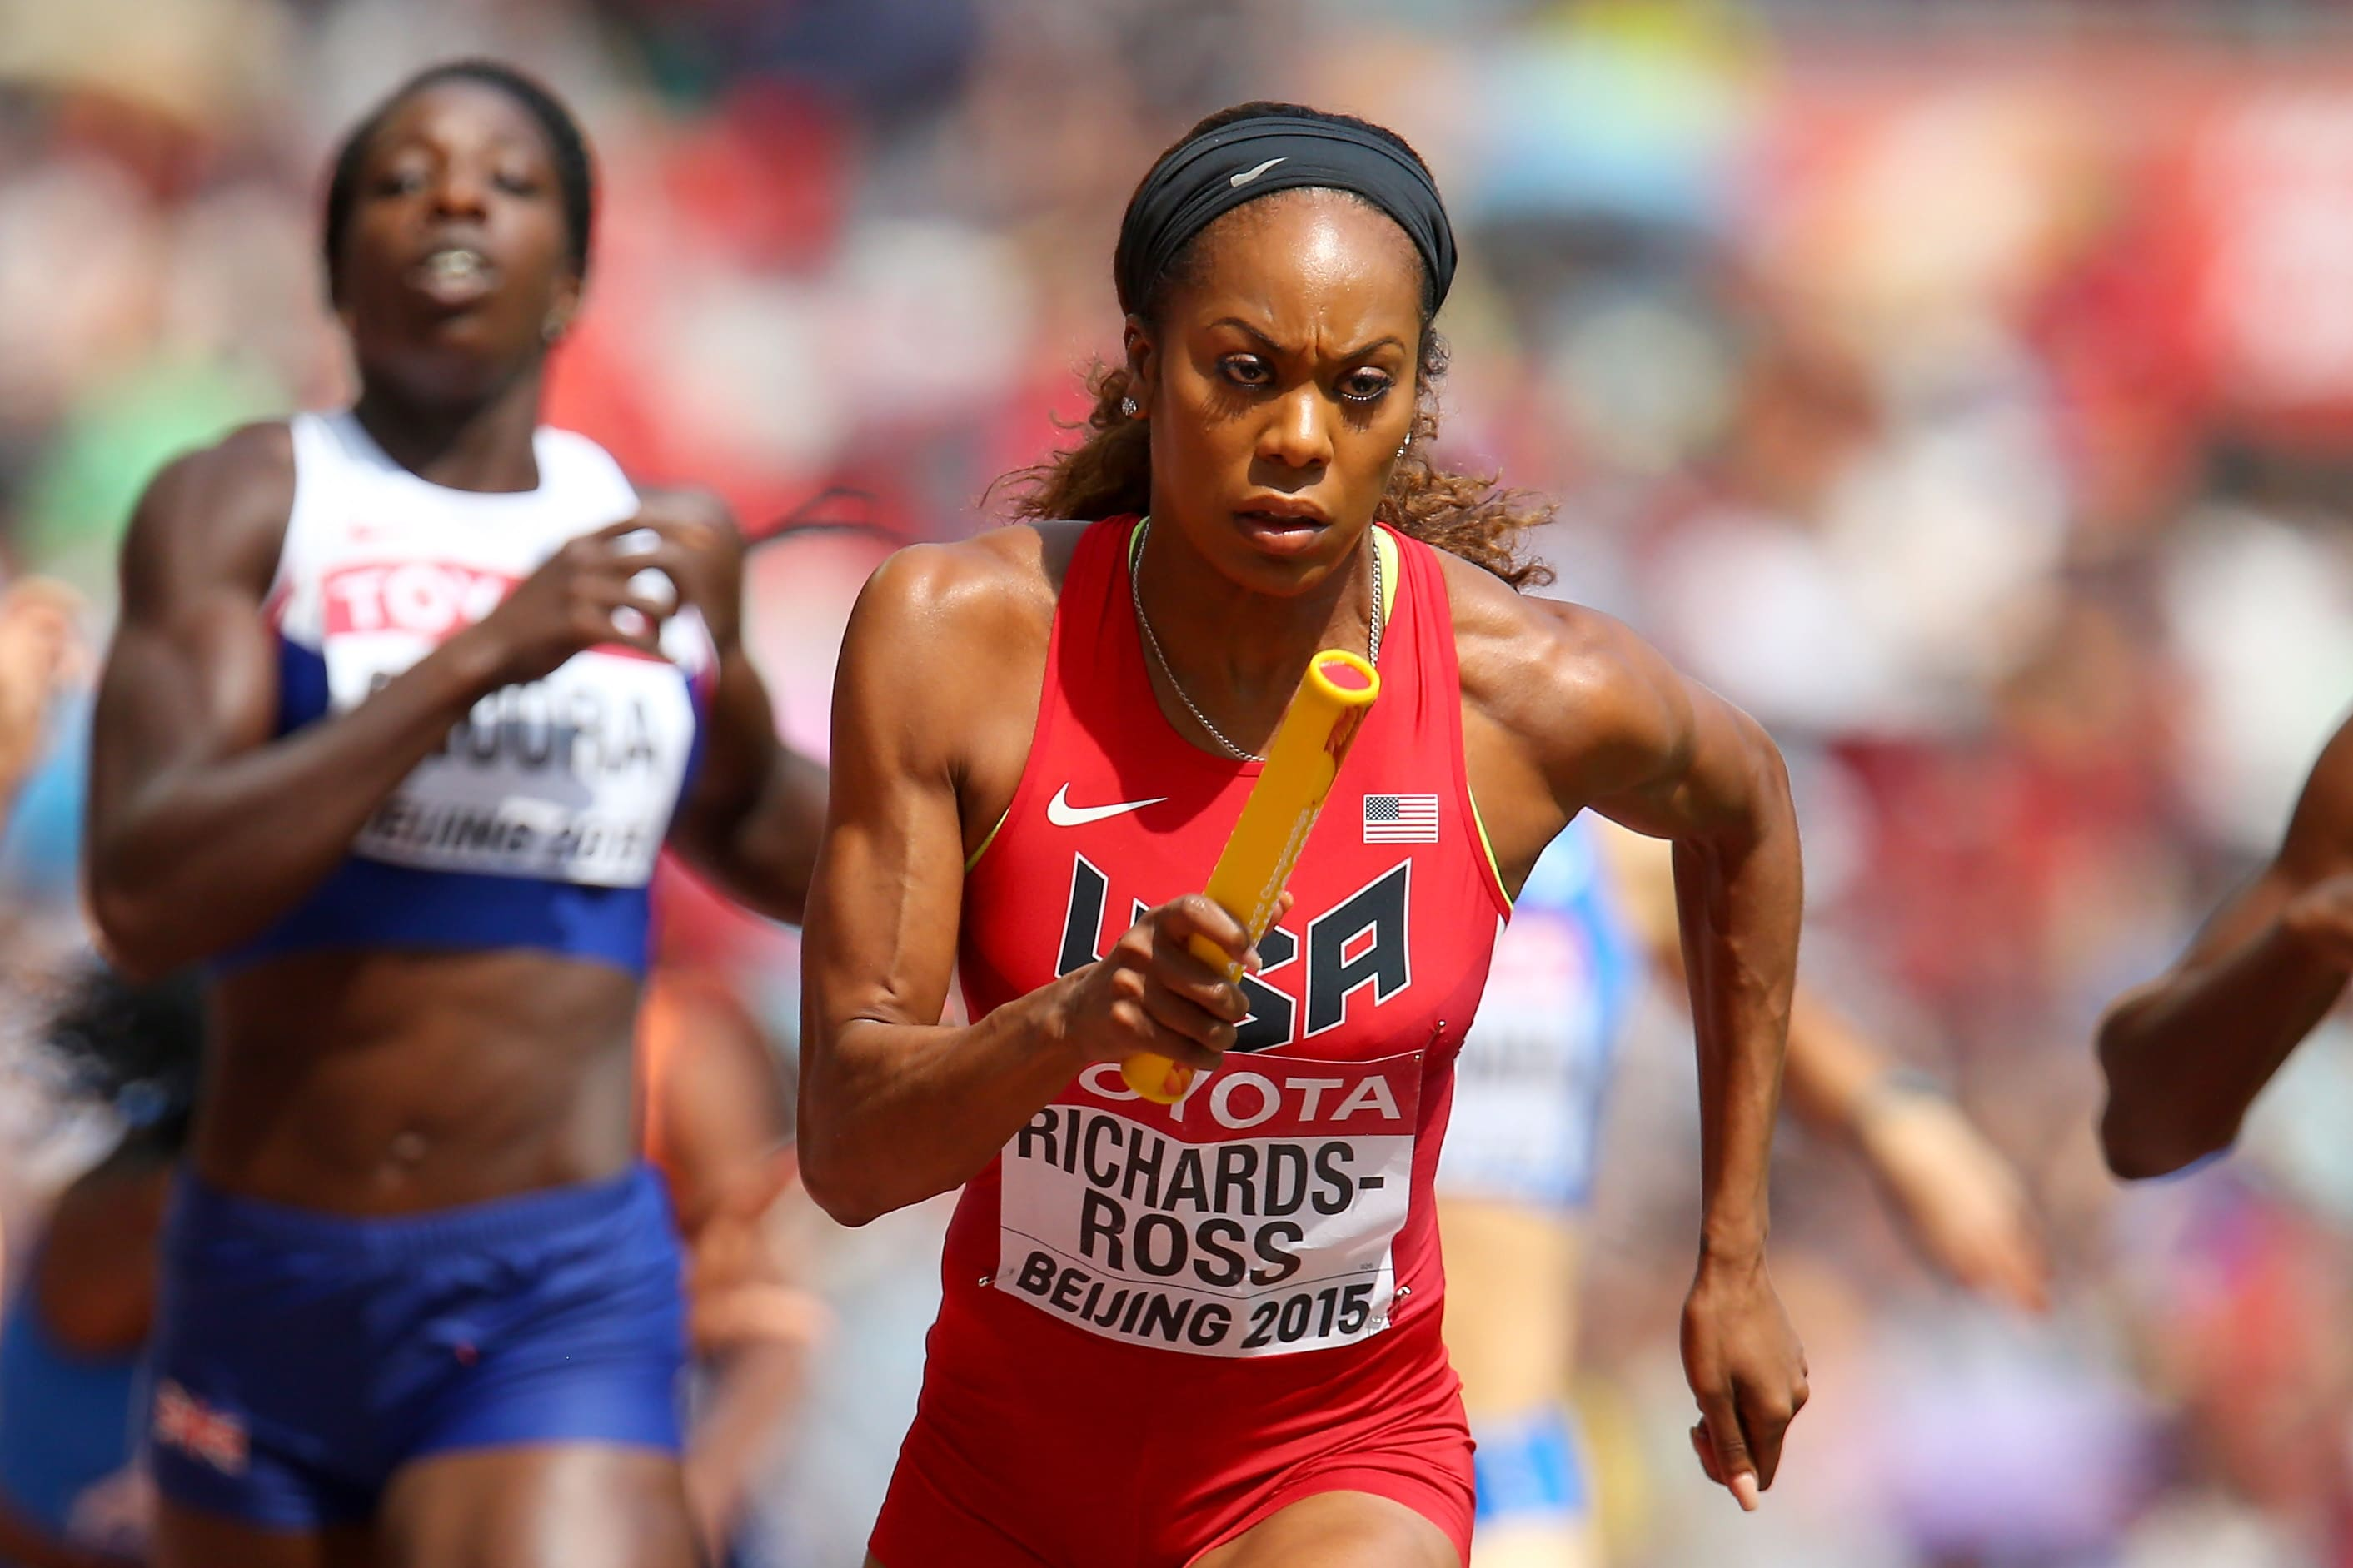 photo Sanya Richards-Ross 5 Olympic medals